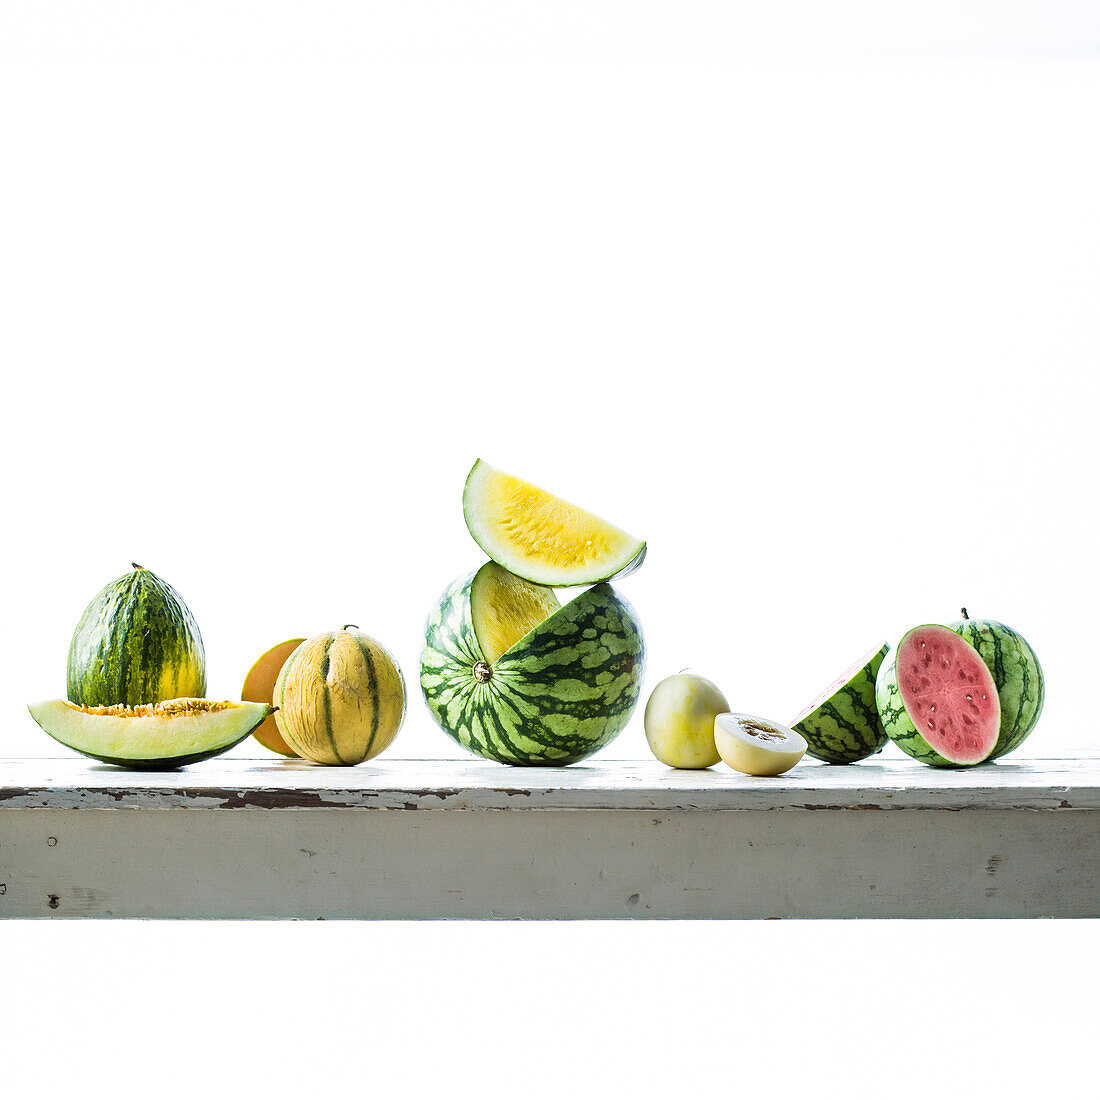 Sliced melons on table